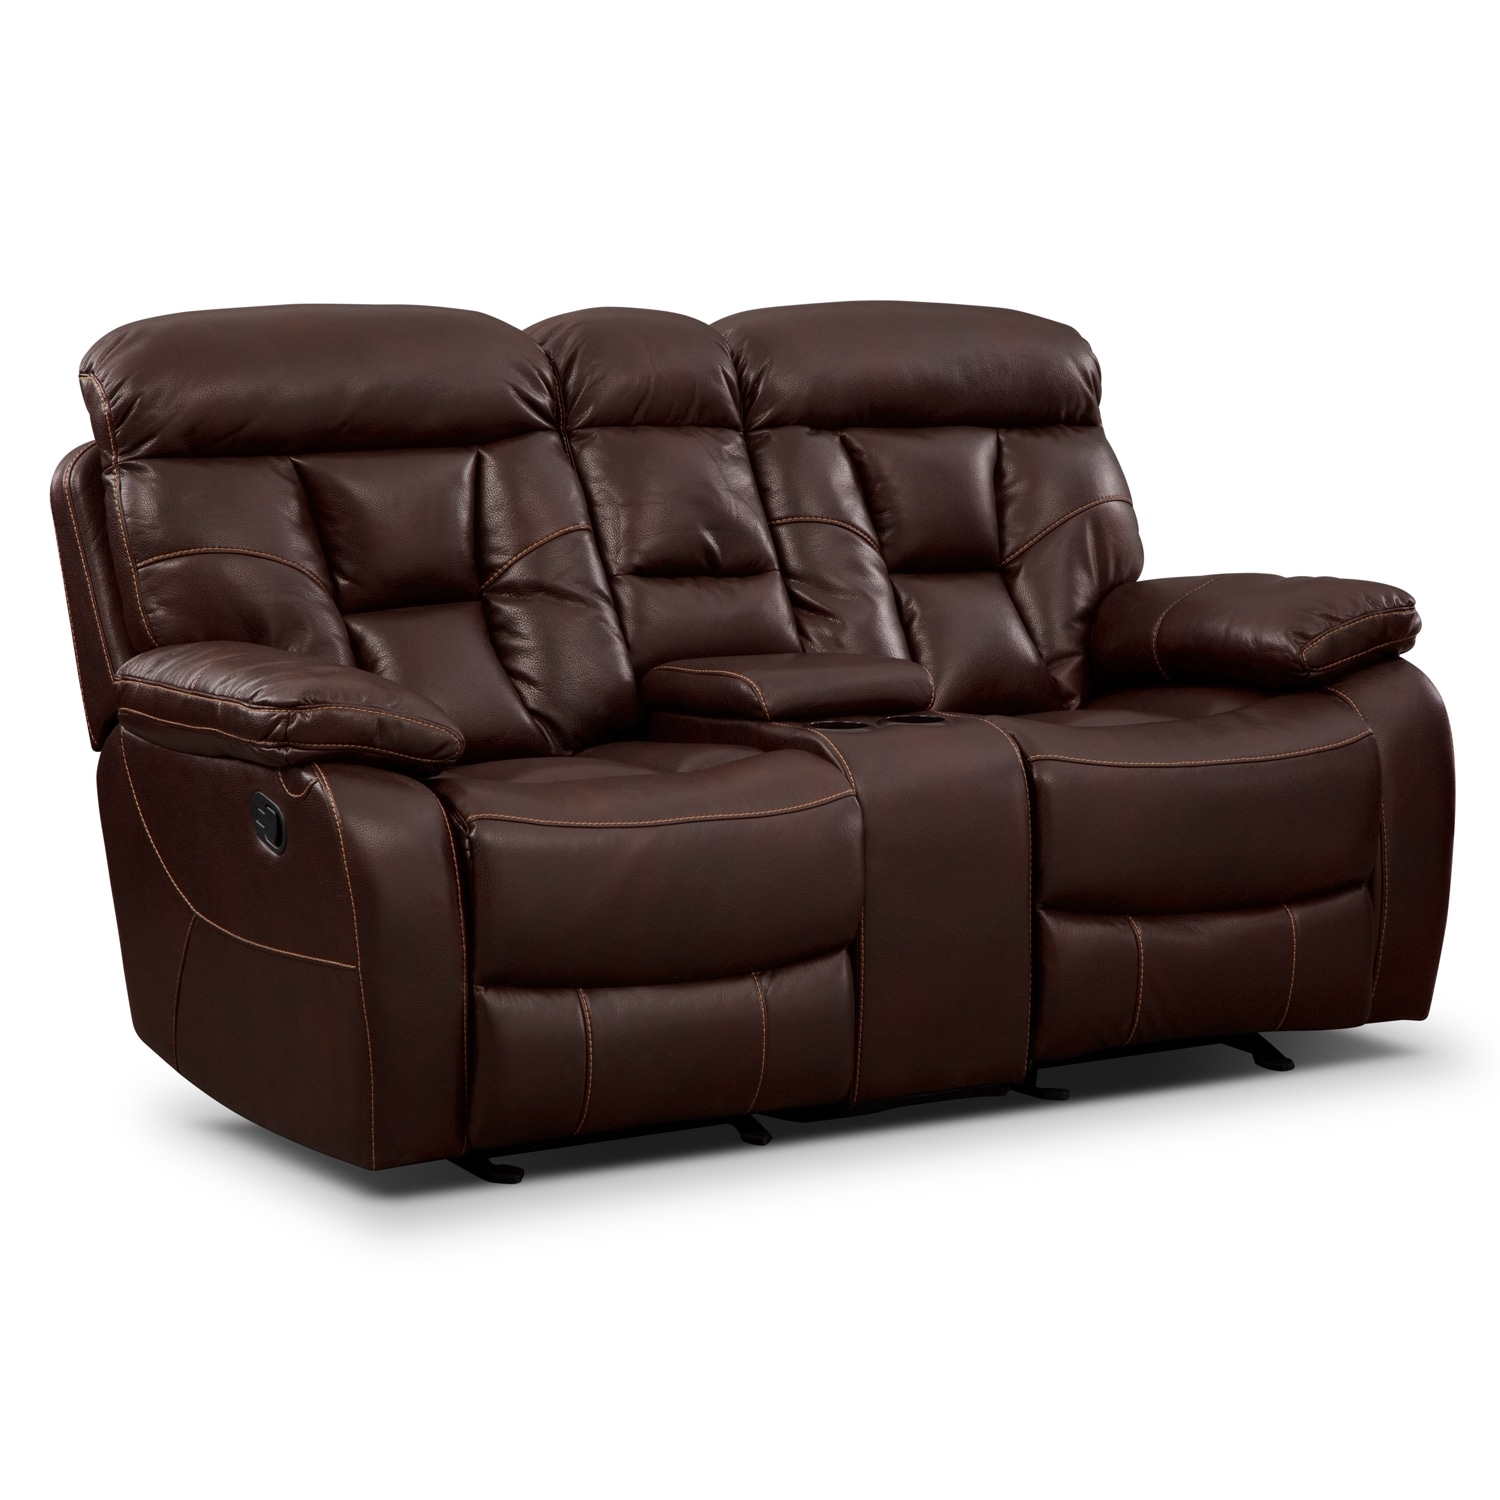 ... Reclining Loveseat with Console - Java. Hover to zoom  sc 1 st  Value City Furniture & Dakota Gliding Reclining Loveseat with Console - Java | Value City ... islam-shia.org